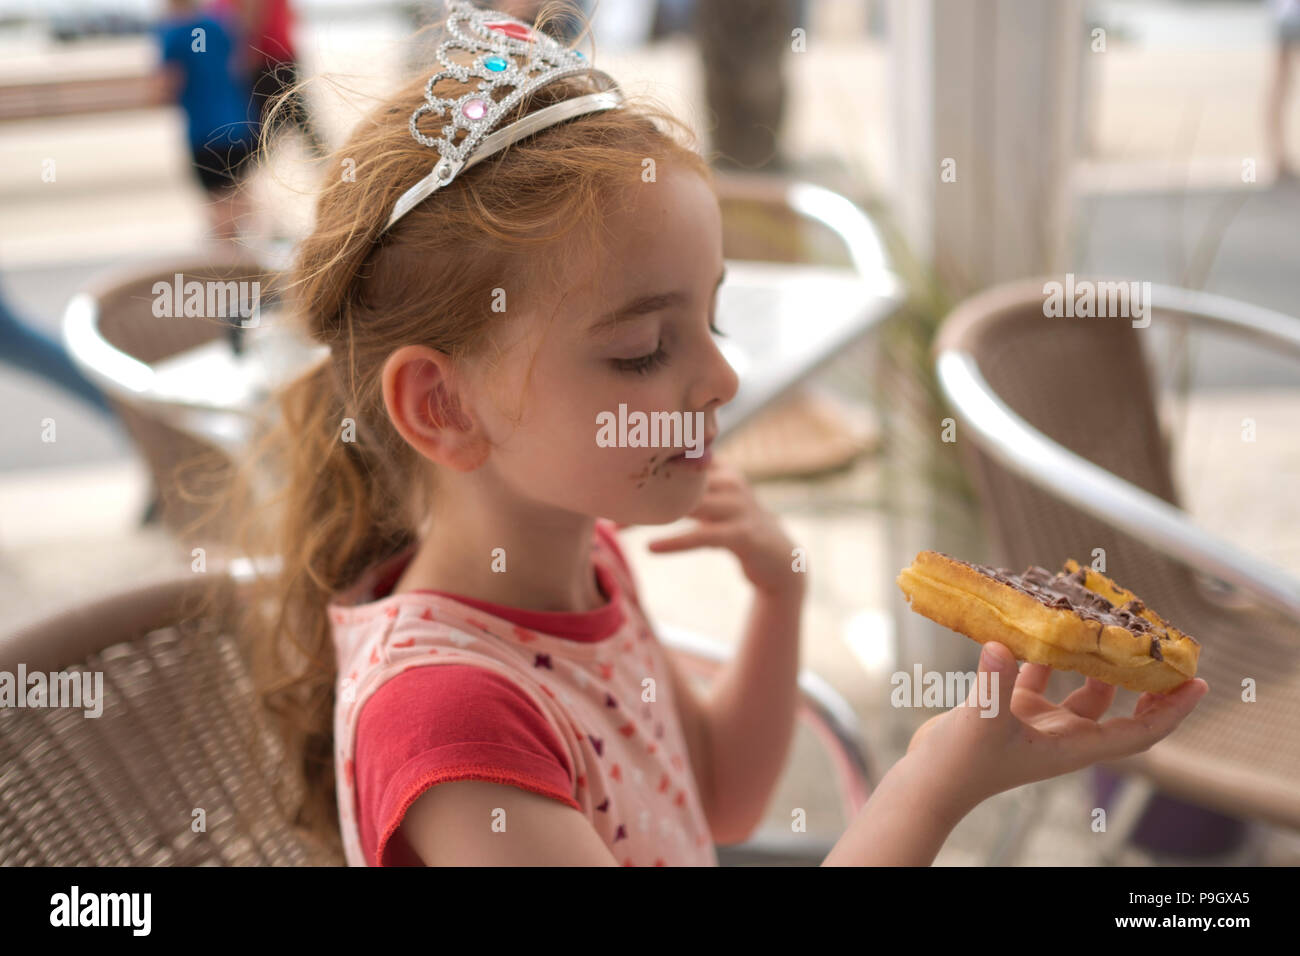 close up of a 4 year old girl with red long hair wearing a tiara, eating a waffle with nutella on a cafe terrace - Stock Image